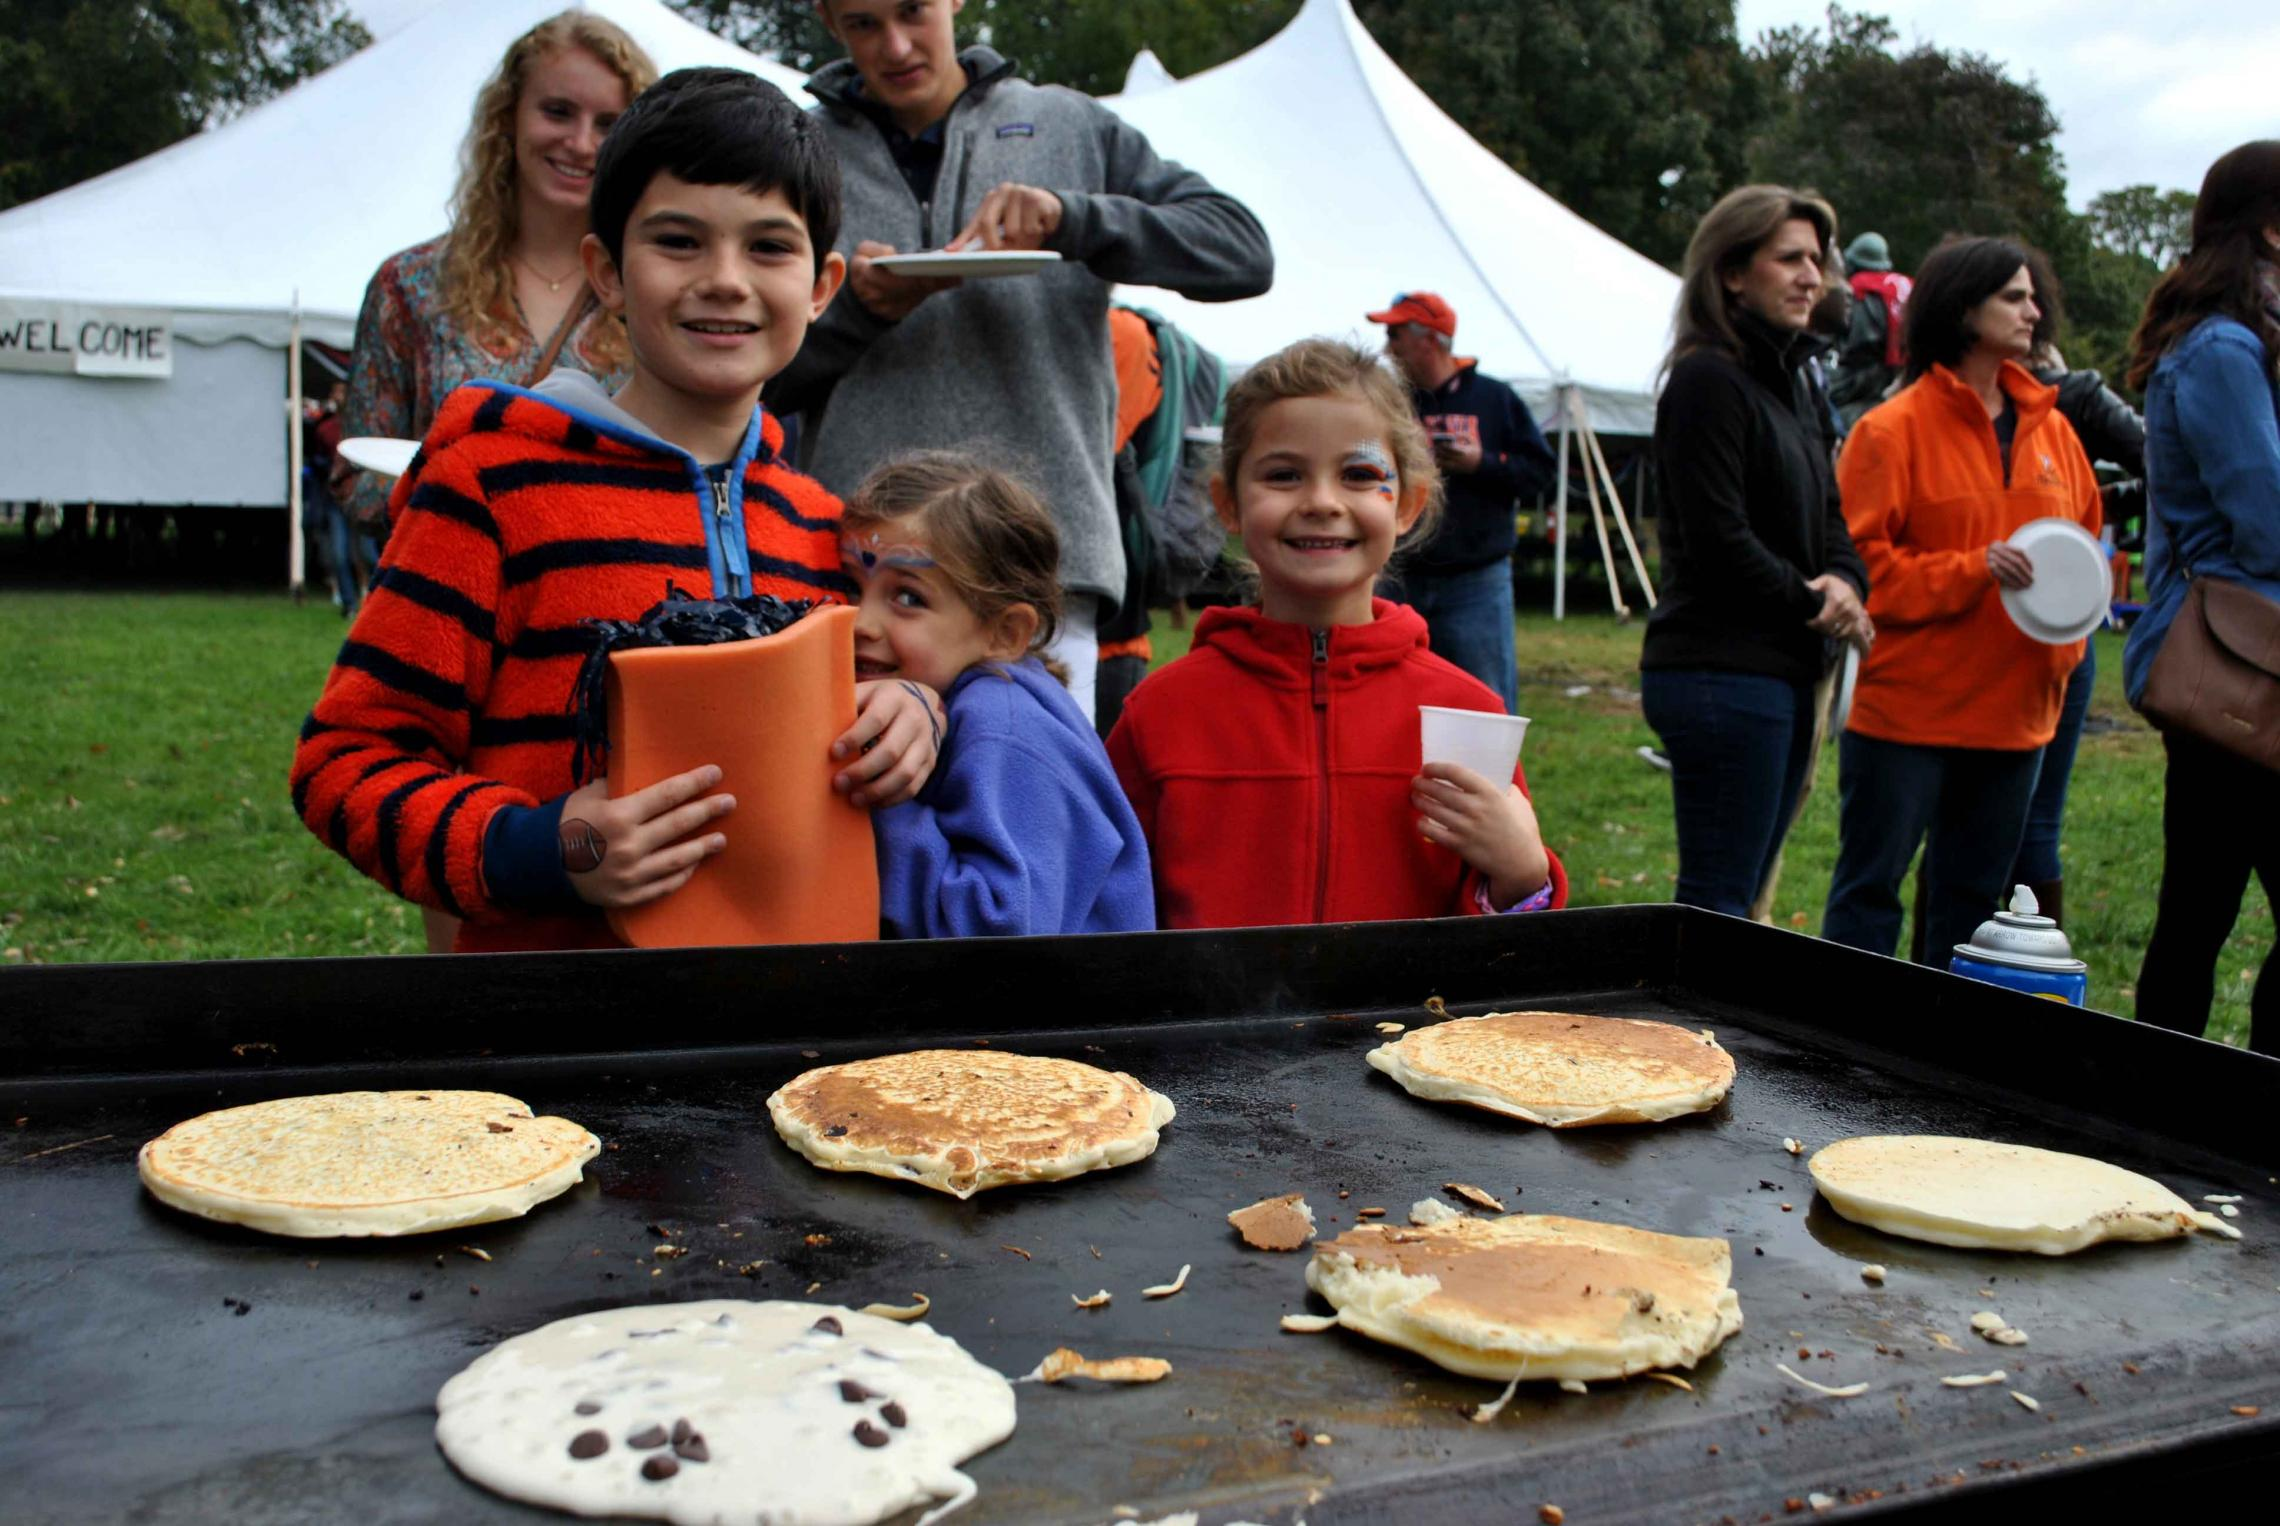 Students served more than 10,000 flapjacks during this year's event, and hope to raise more than last year's total of $58,000 for Parkinson's research.